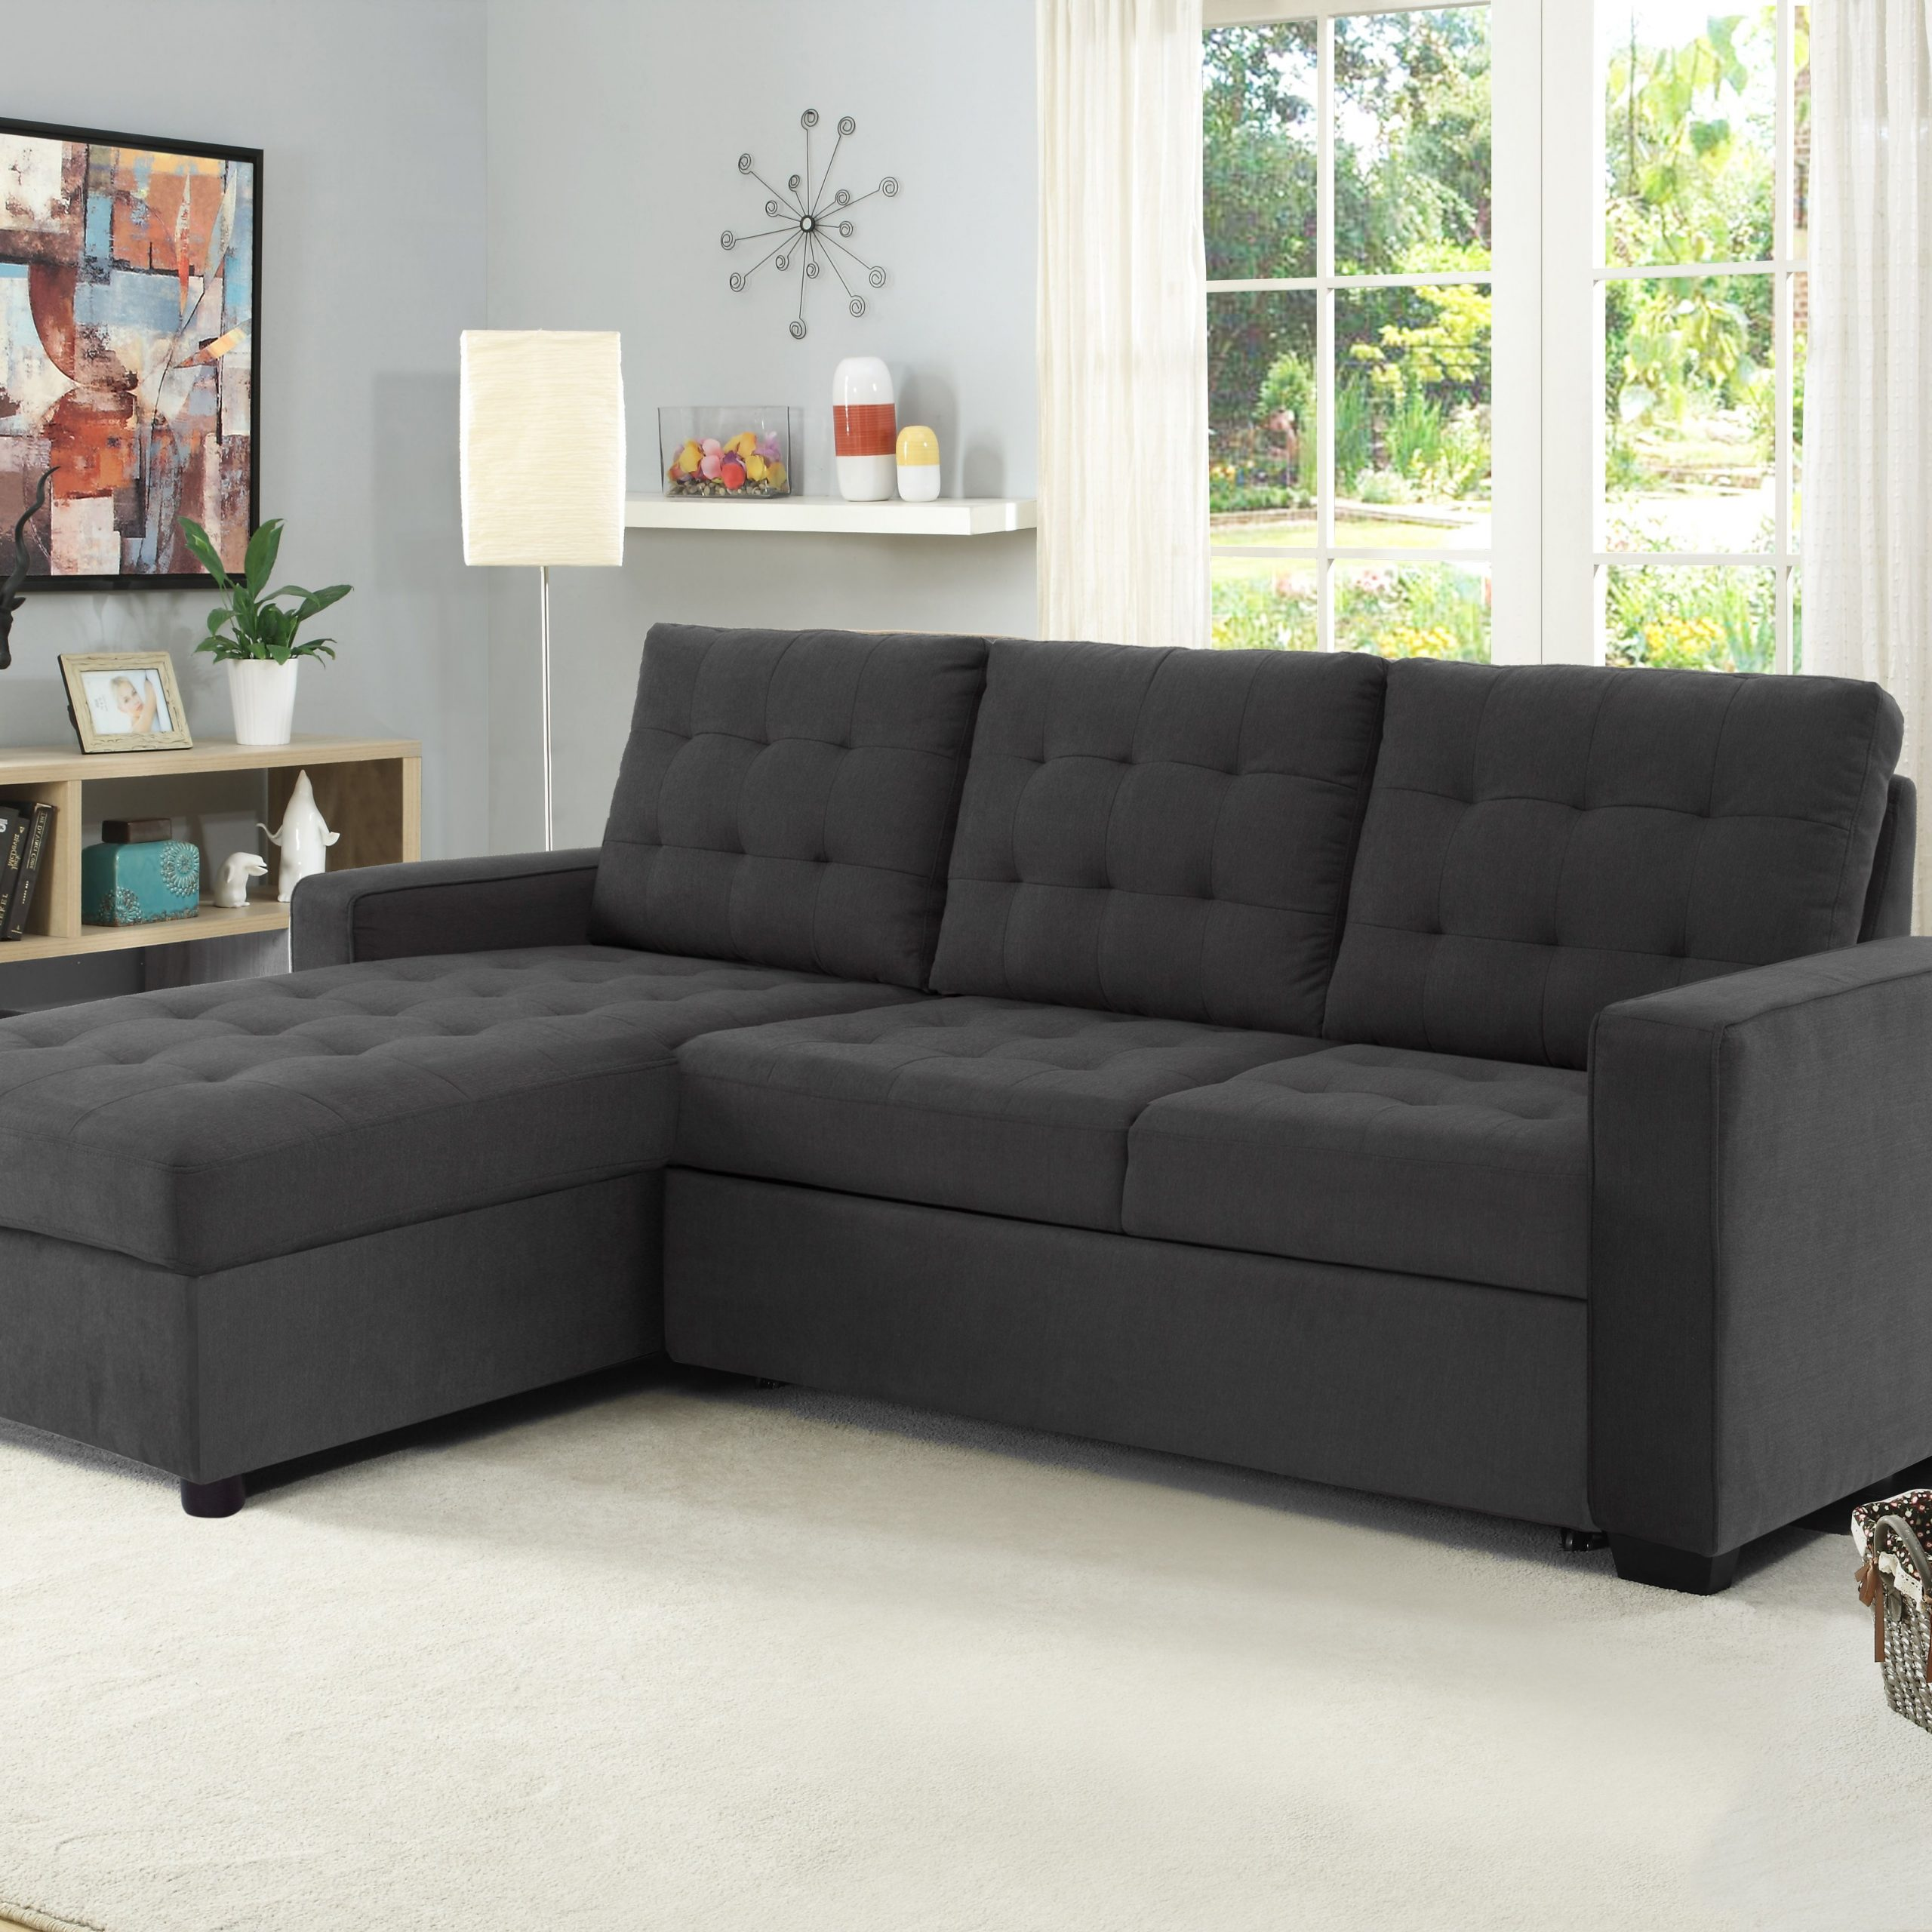 Widely Used Buy Serta Bostal Sectional Sofa Convertible: Converts Into Intended For Live It Cozy Sectional Sofa Beds With Storage (View 2 of 25)